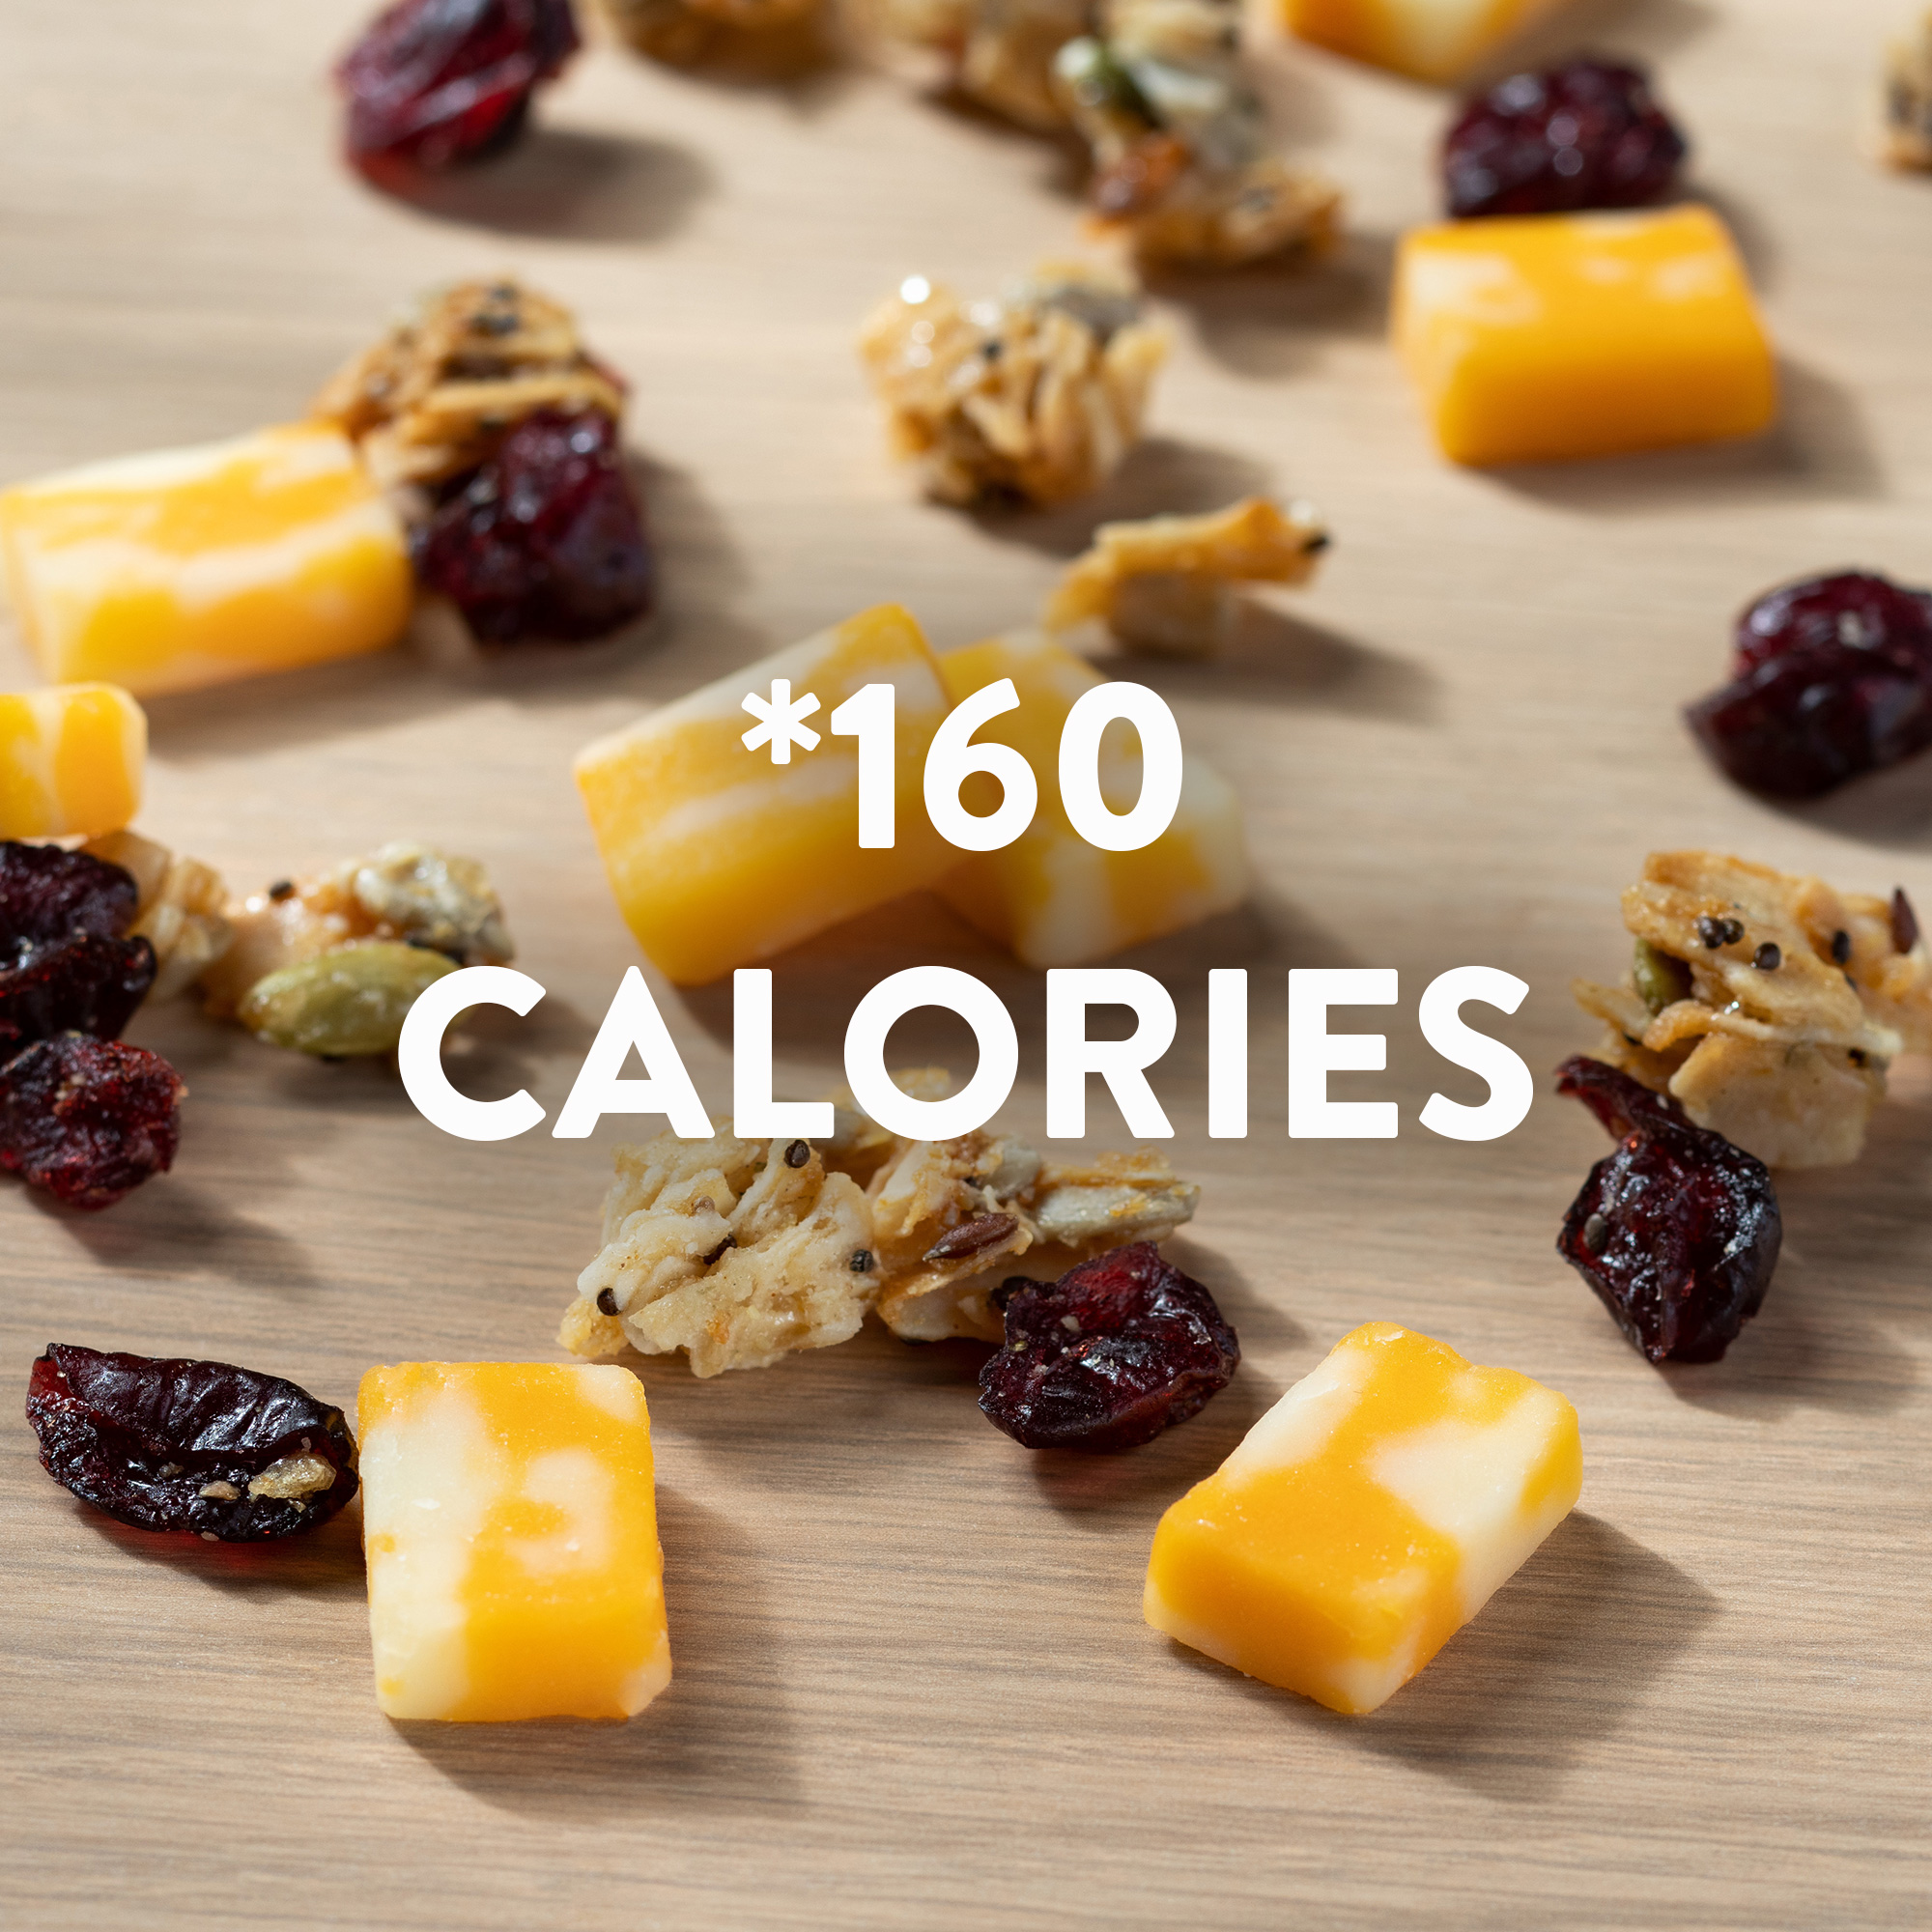 Sargento® Sunrise Balanced Breaks®, Colby-Jack Natural Cheese, Coconut Clusters with Seed Medley, and Dried Cranberries